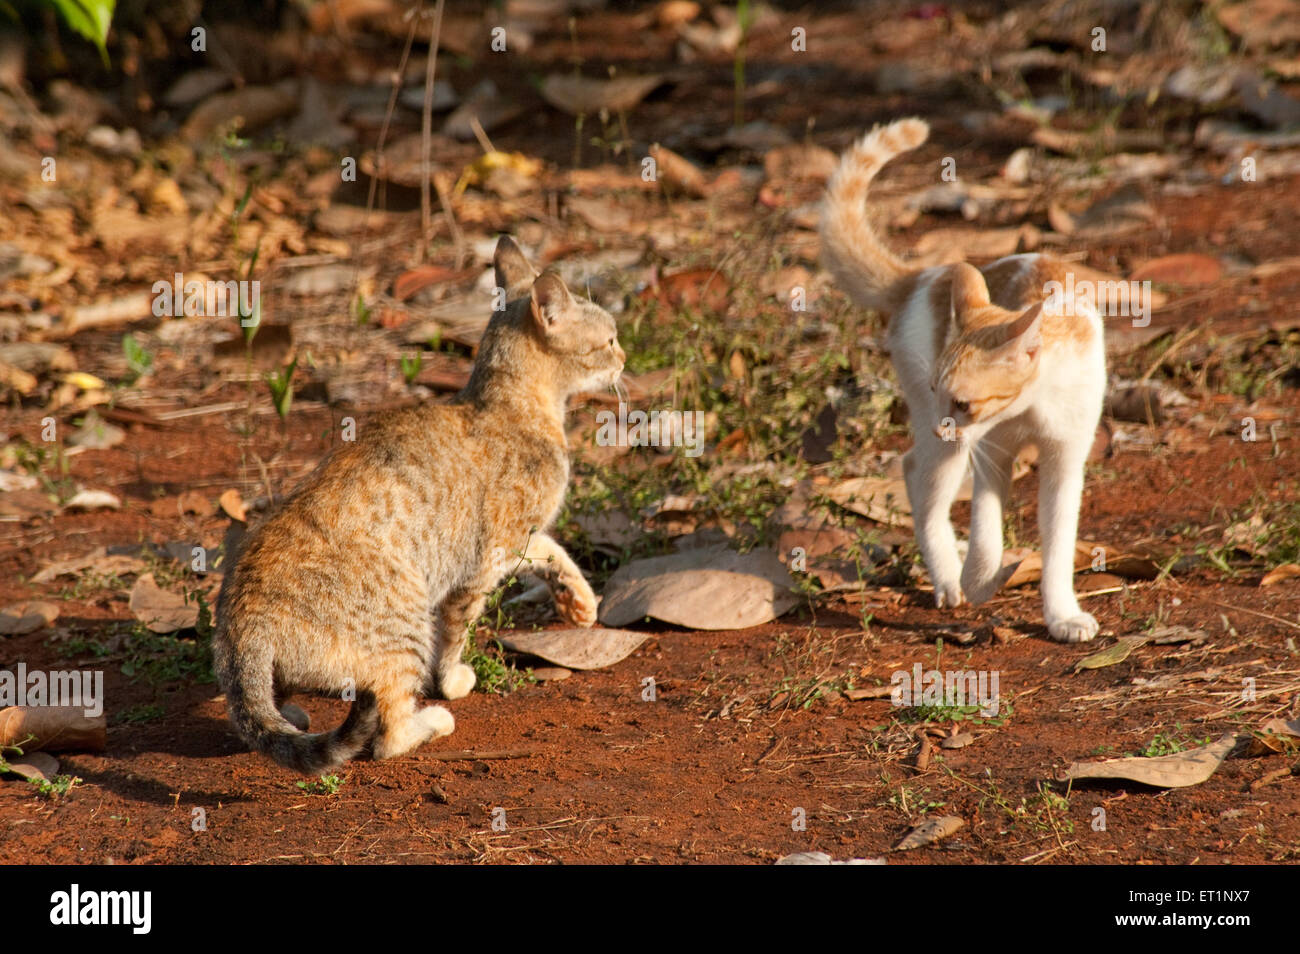 Cats fighting - Stock Image